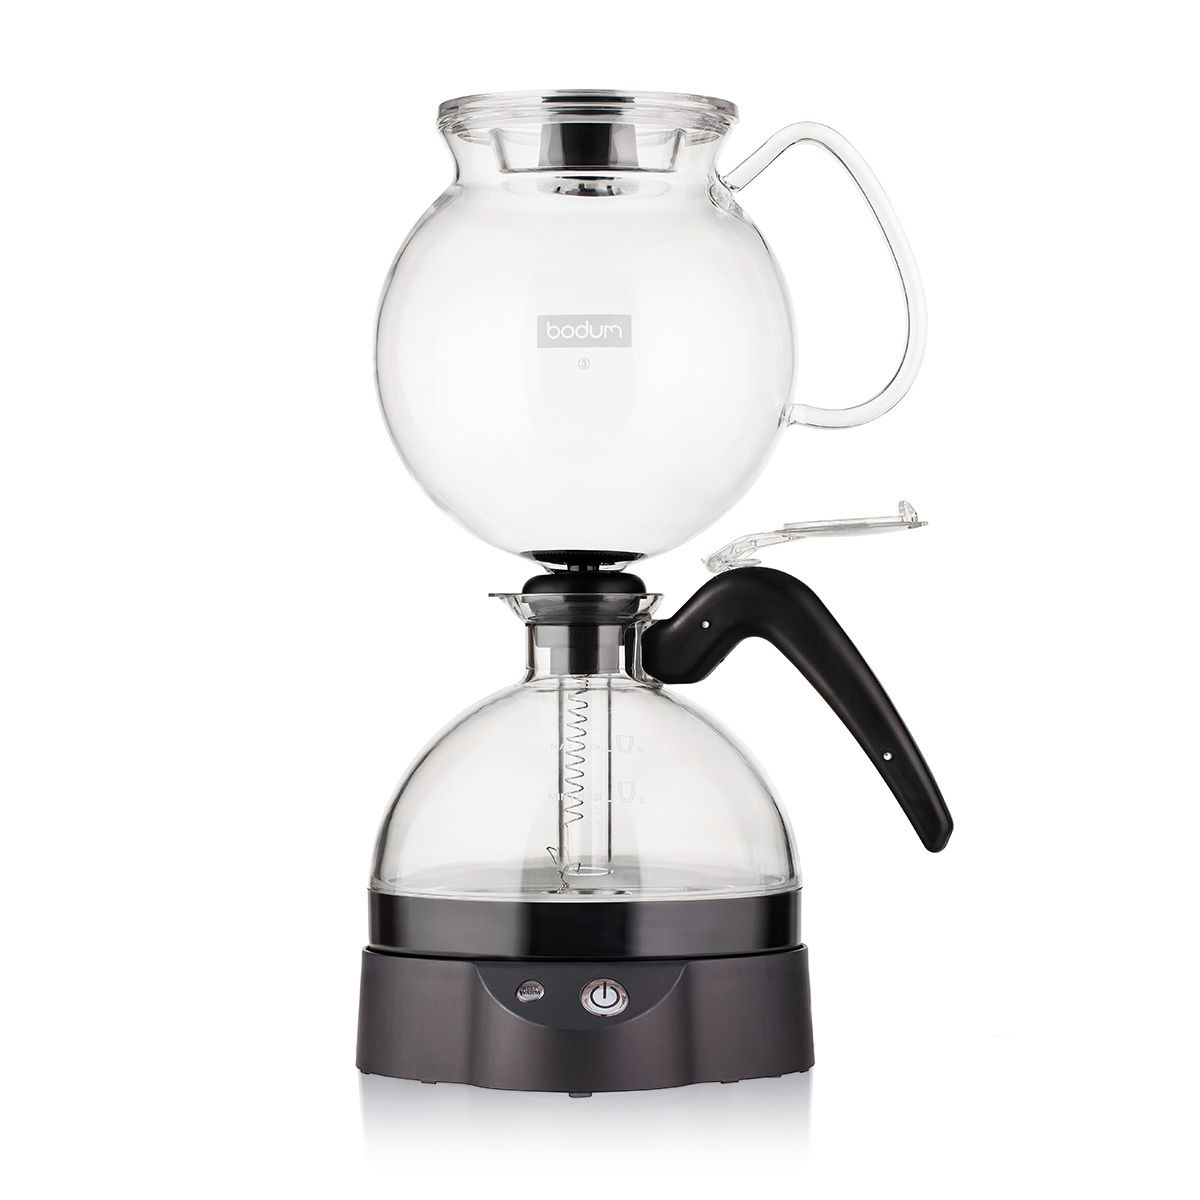 siphon coffee maker Bodum